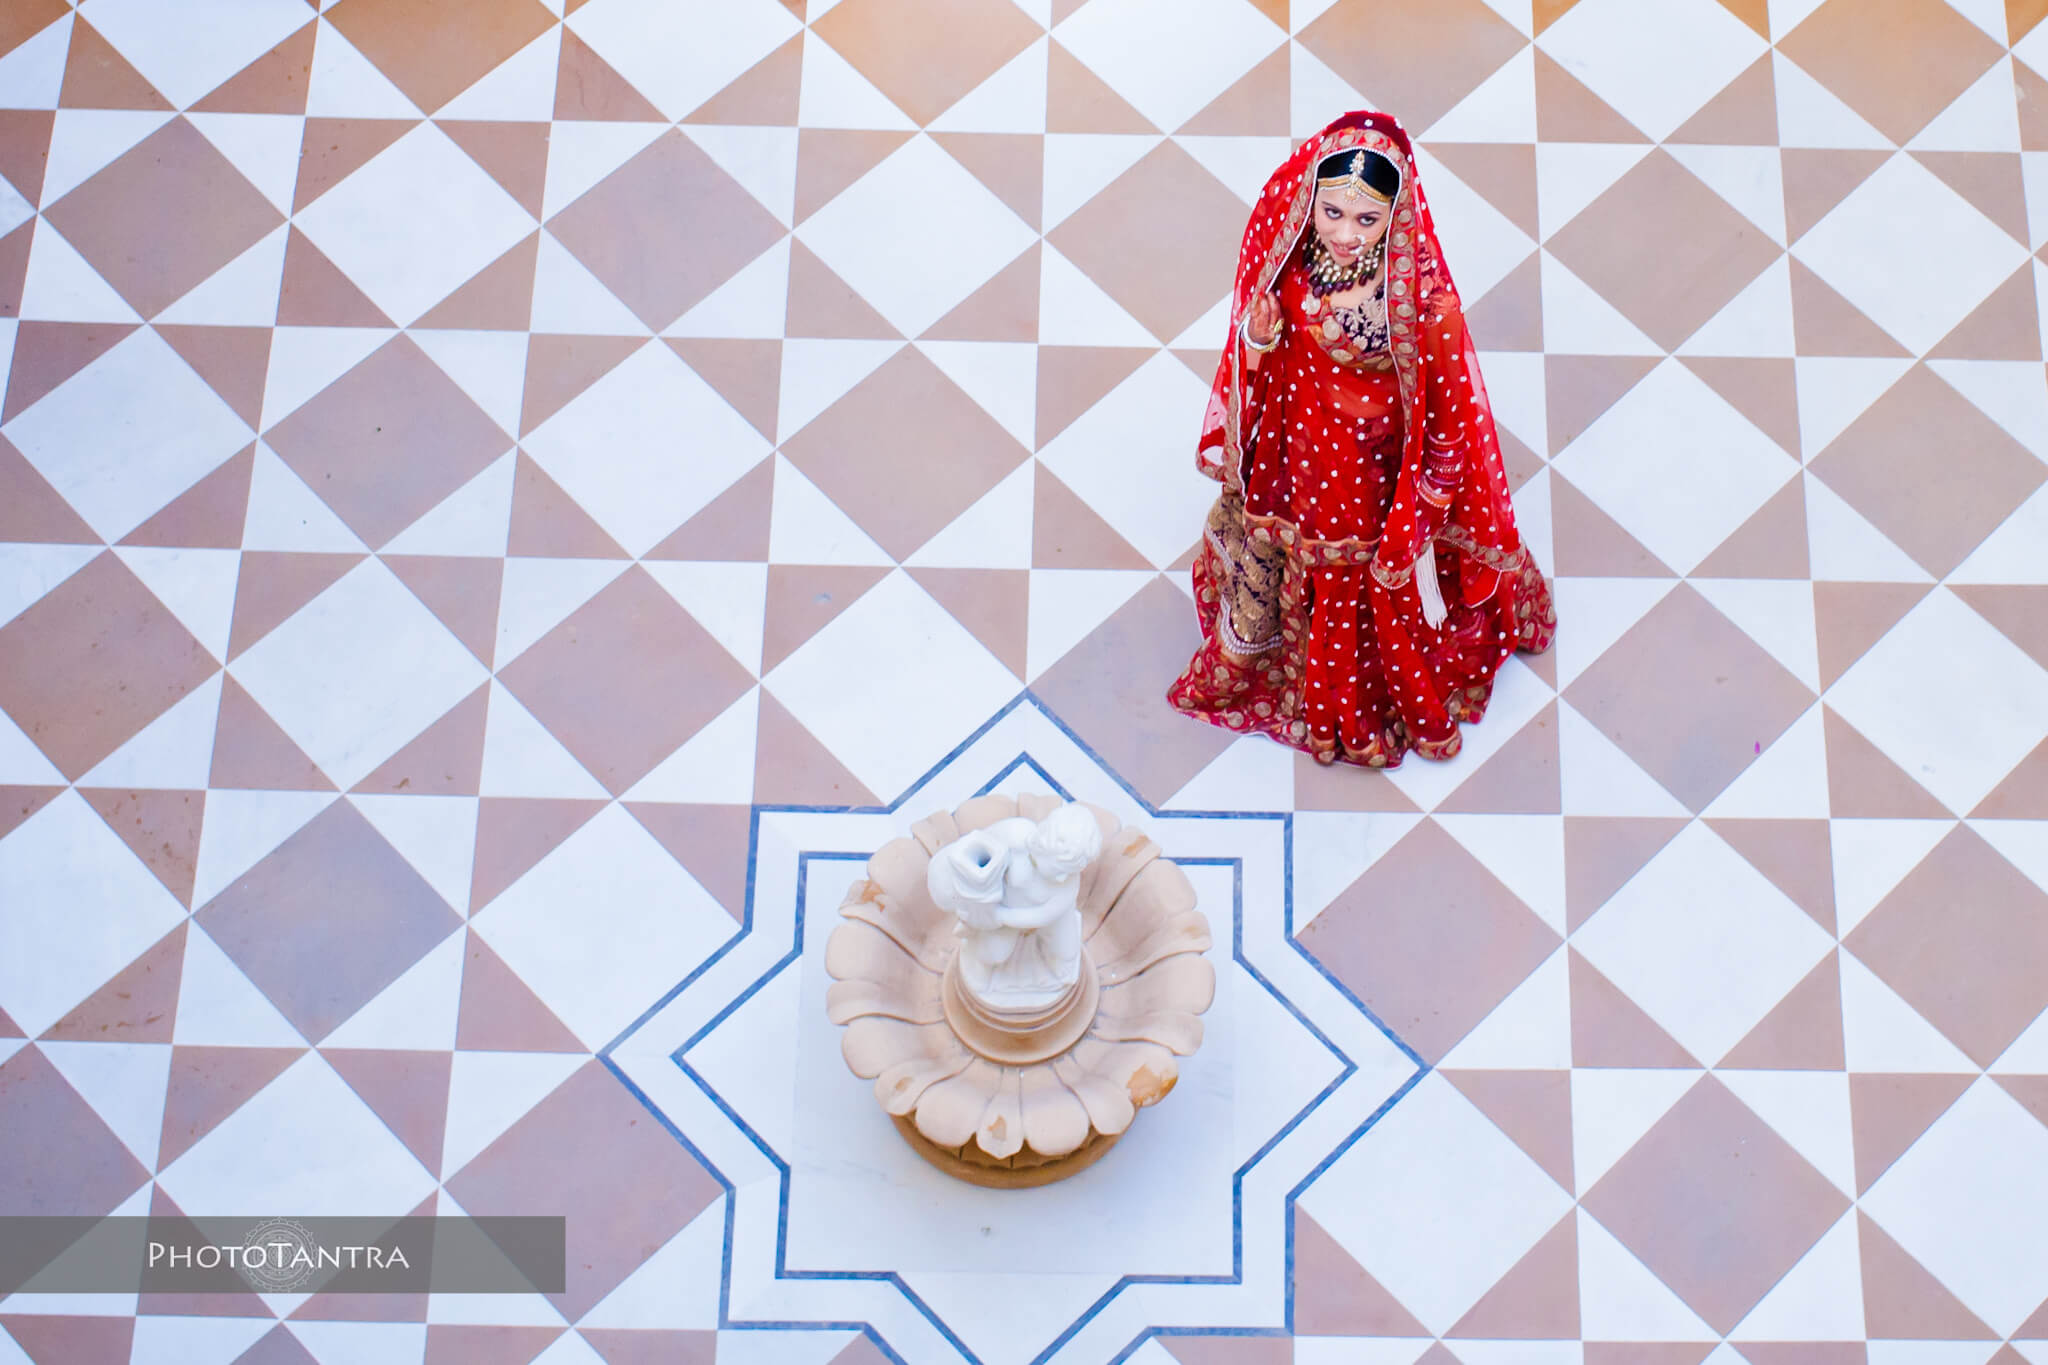 Destination Wedding at Raj Palace Jaipur India captured by Vinayak Das Phototantra